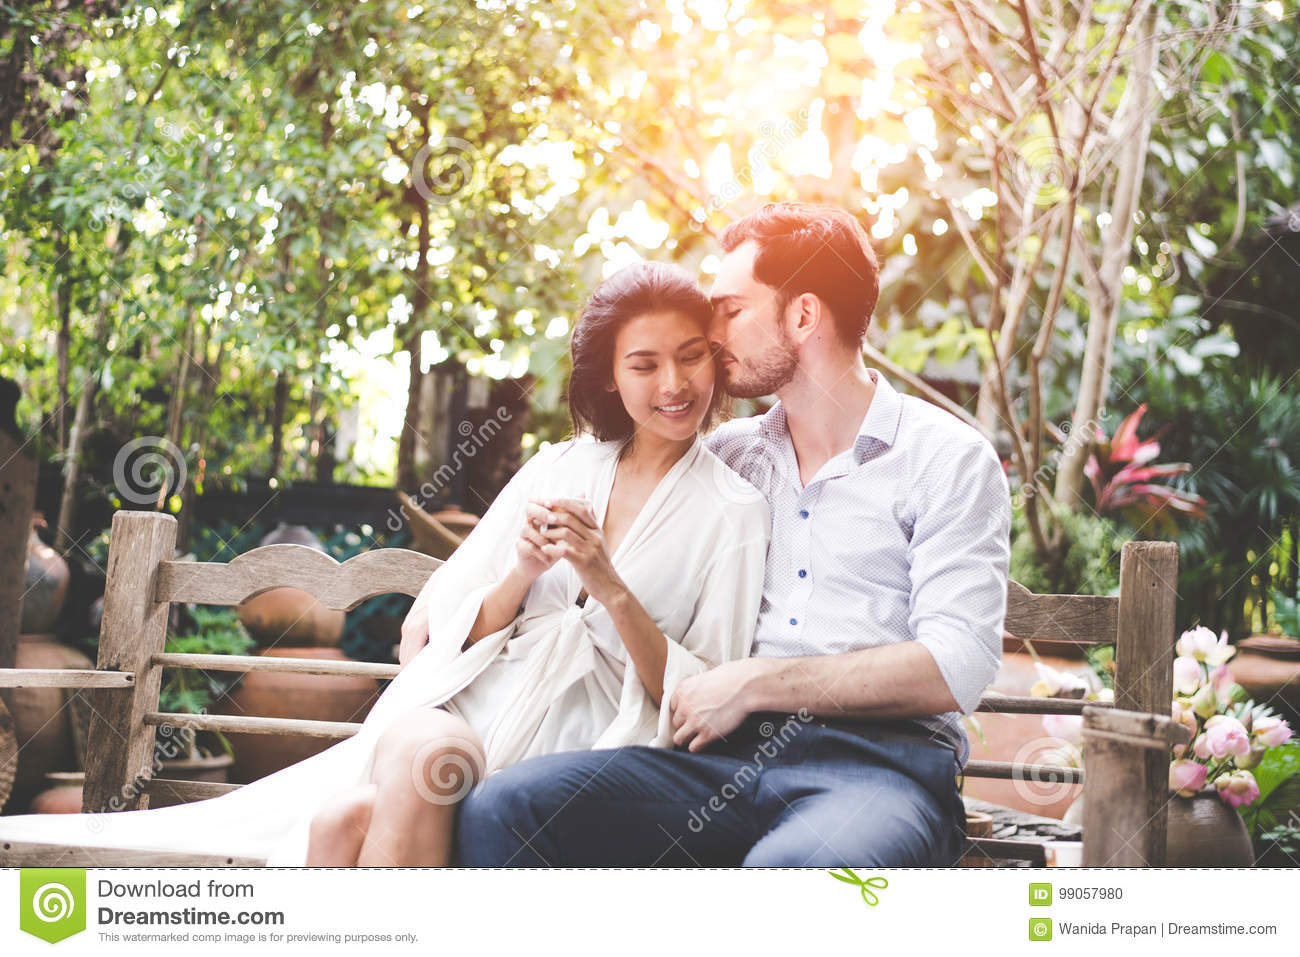 Happiness and romantic scene of love asian couples partners making eye contact and kiss